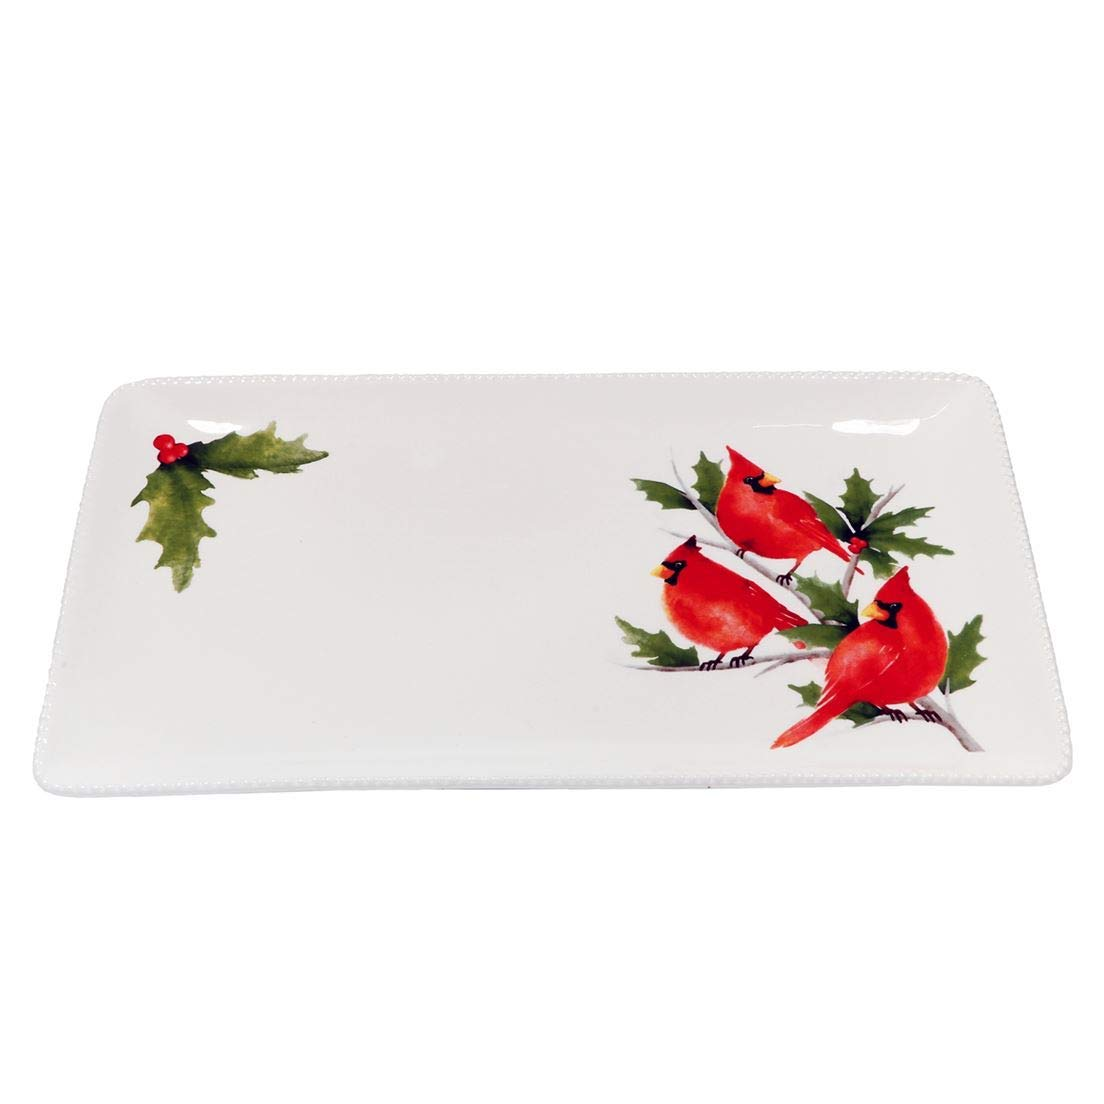 DEI Ceramic Platter, 16.25 x 8.75 x 1.25, White/Red